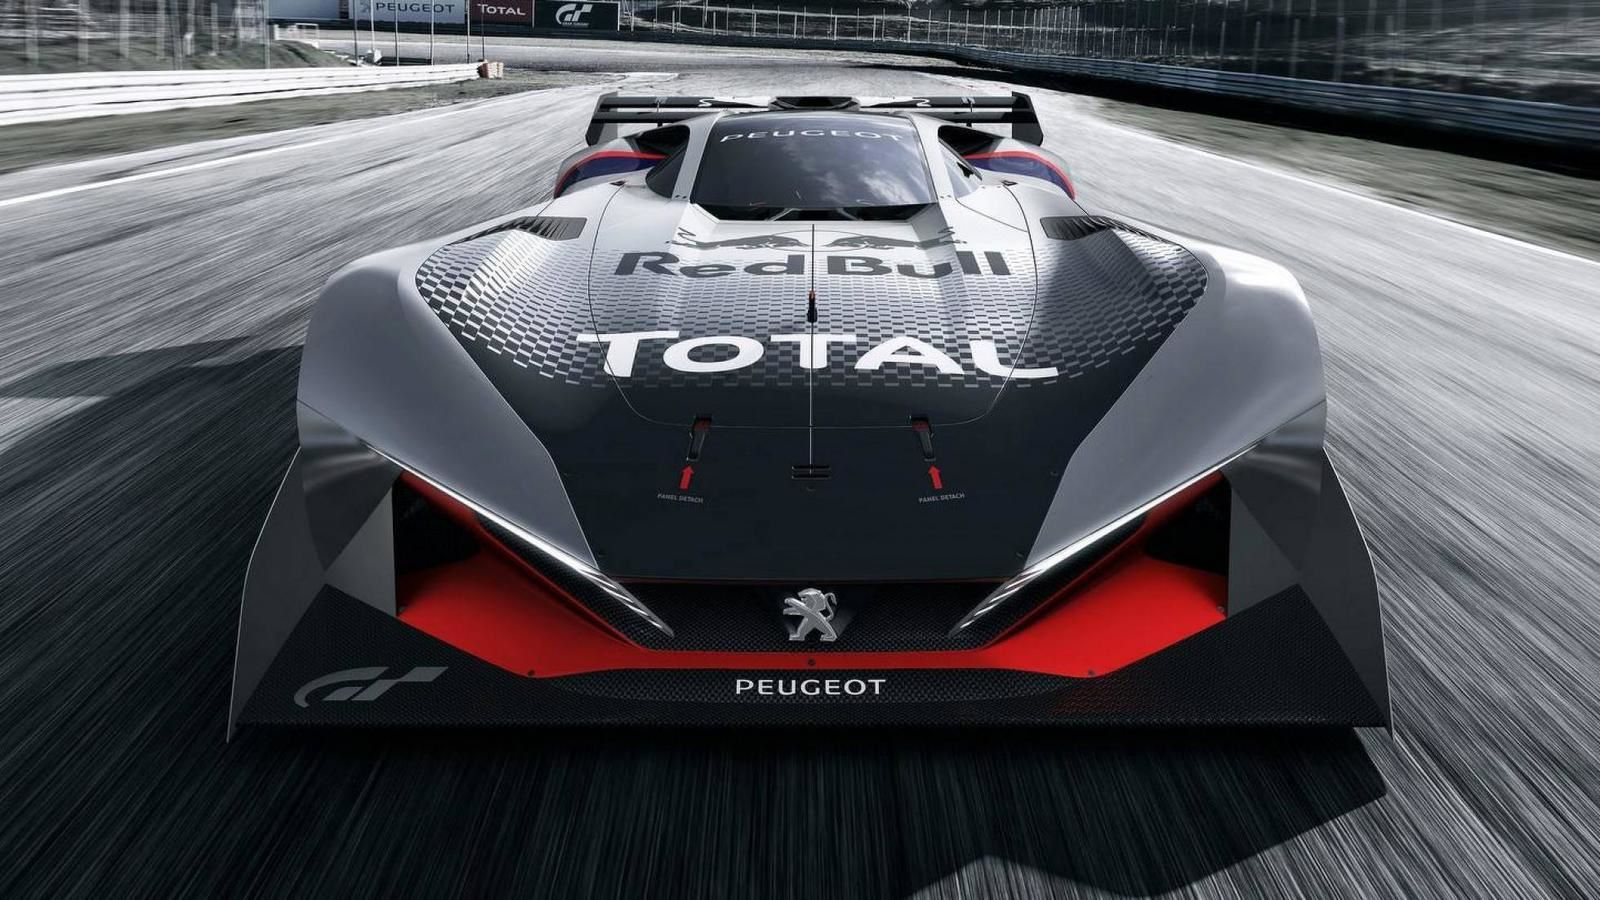 WEC PEUGEOT BACK TO LE MANS